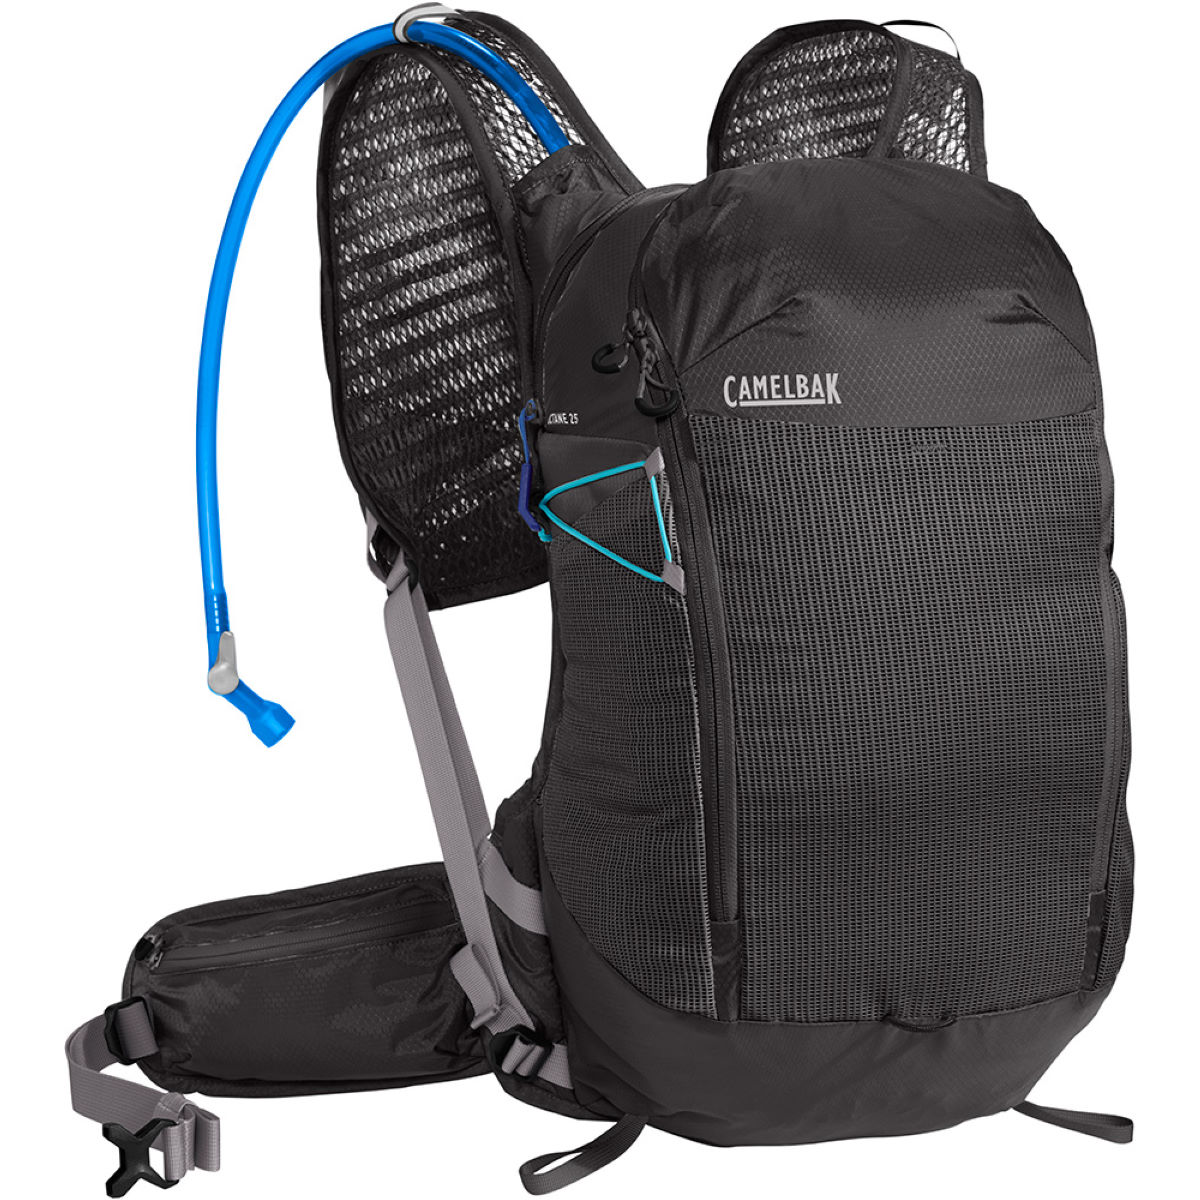 Camelbak Octane 25 2L Hydration Pack – One Size Black/Blue Fish